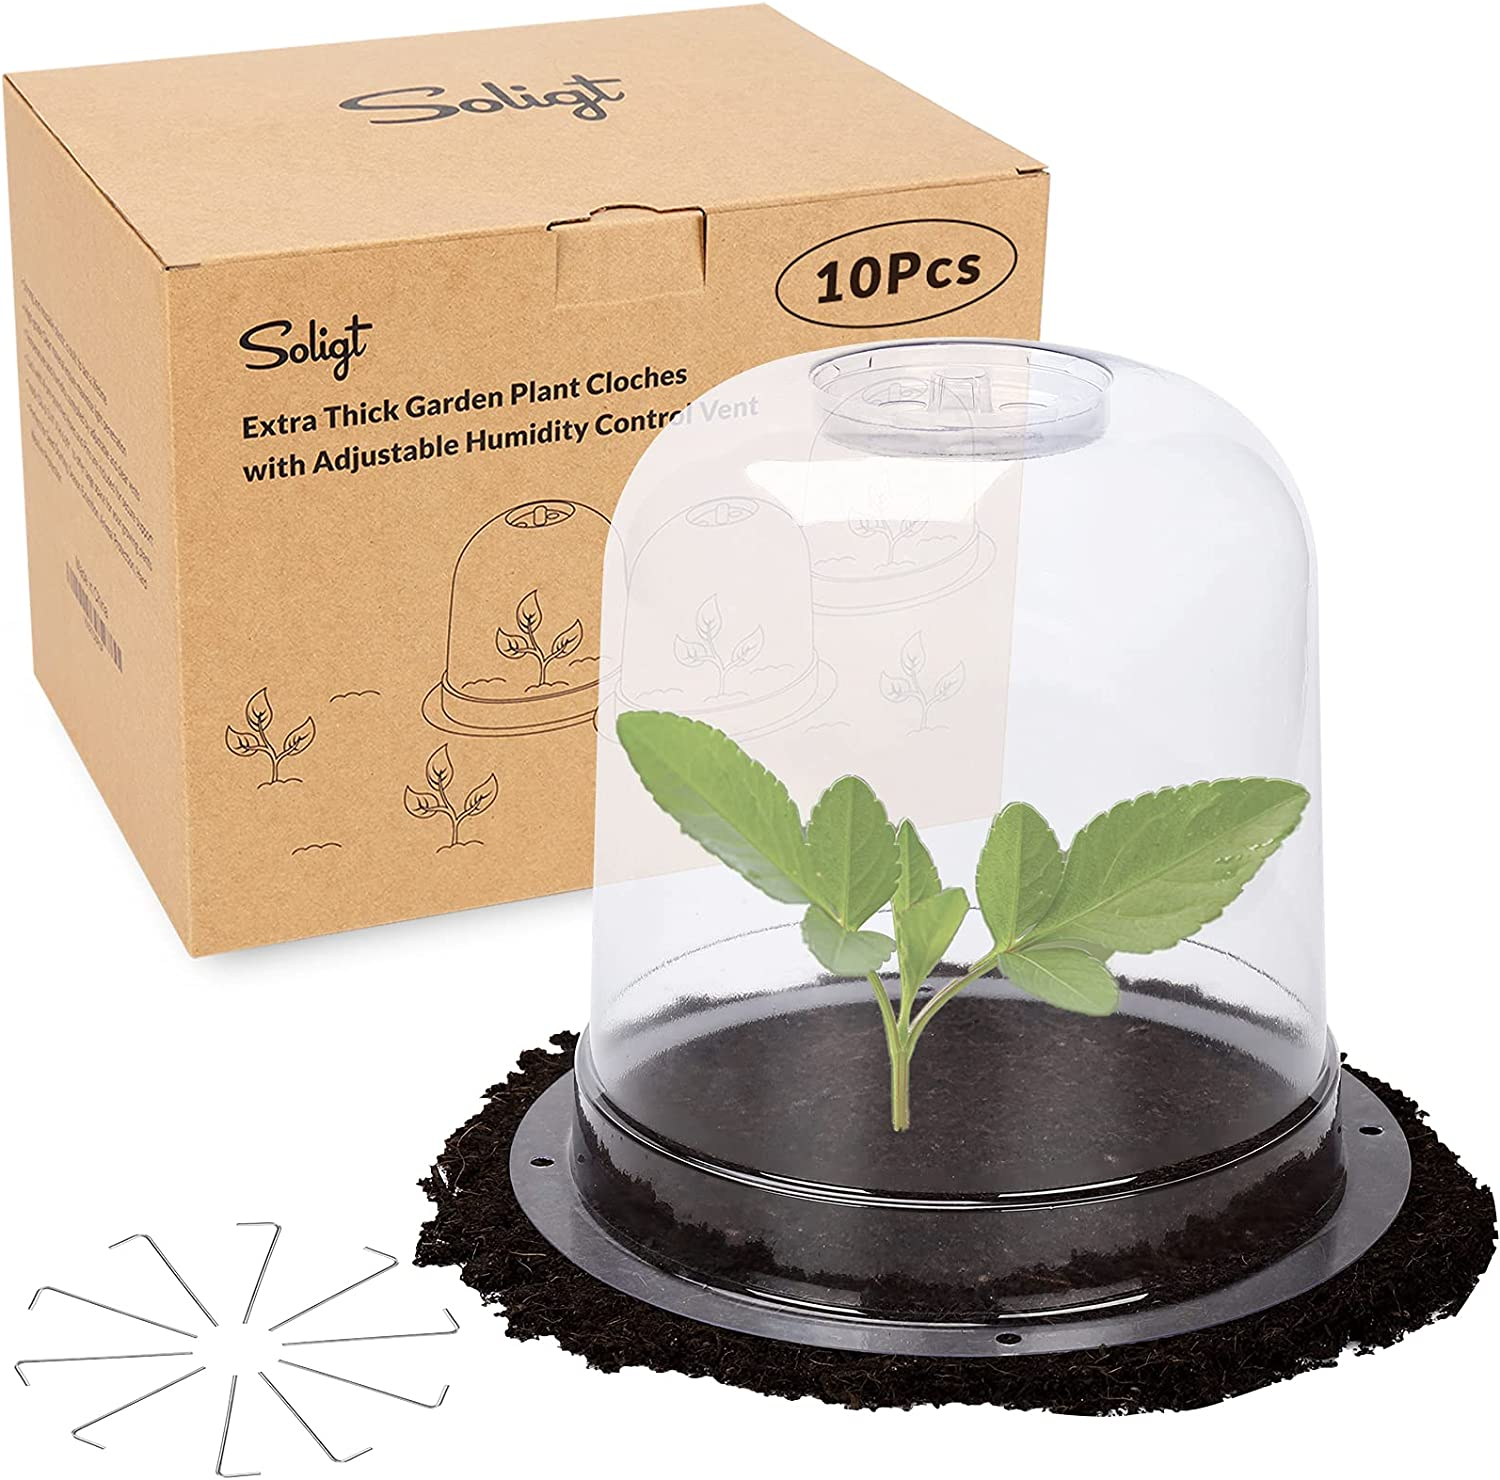 SOLIGT 10 Pack Extra Thick Garden Cloche Plastic Plant Cover Humidity Dome with Clear Vent for Vegetable Seed Starting| 40 Ground Securing Pegs (7.88